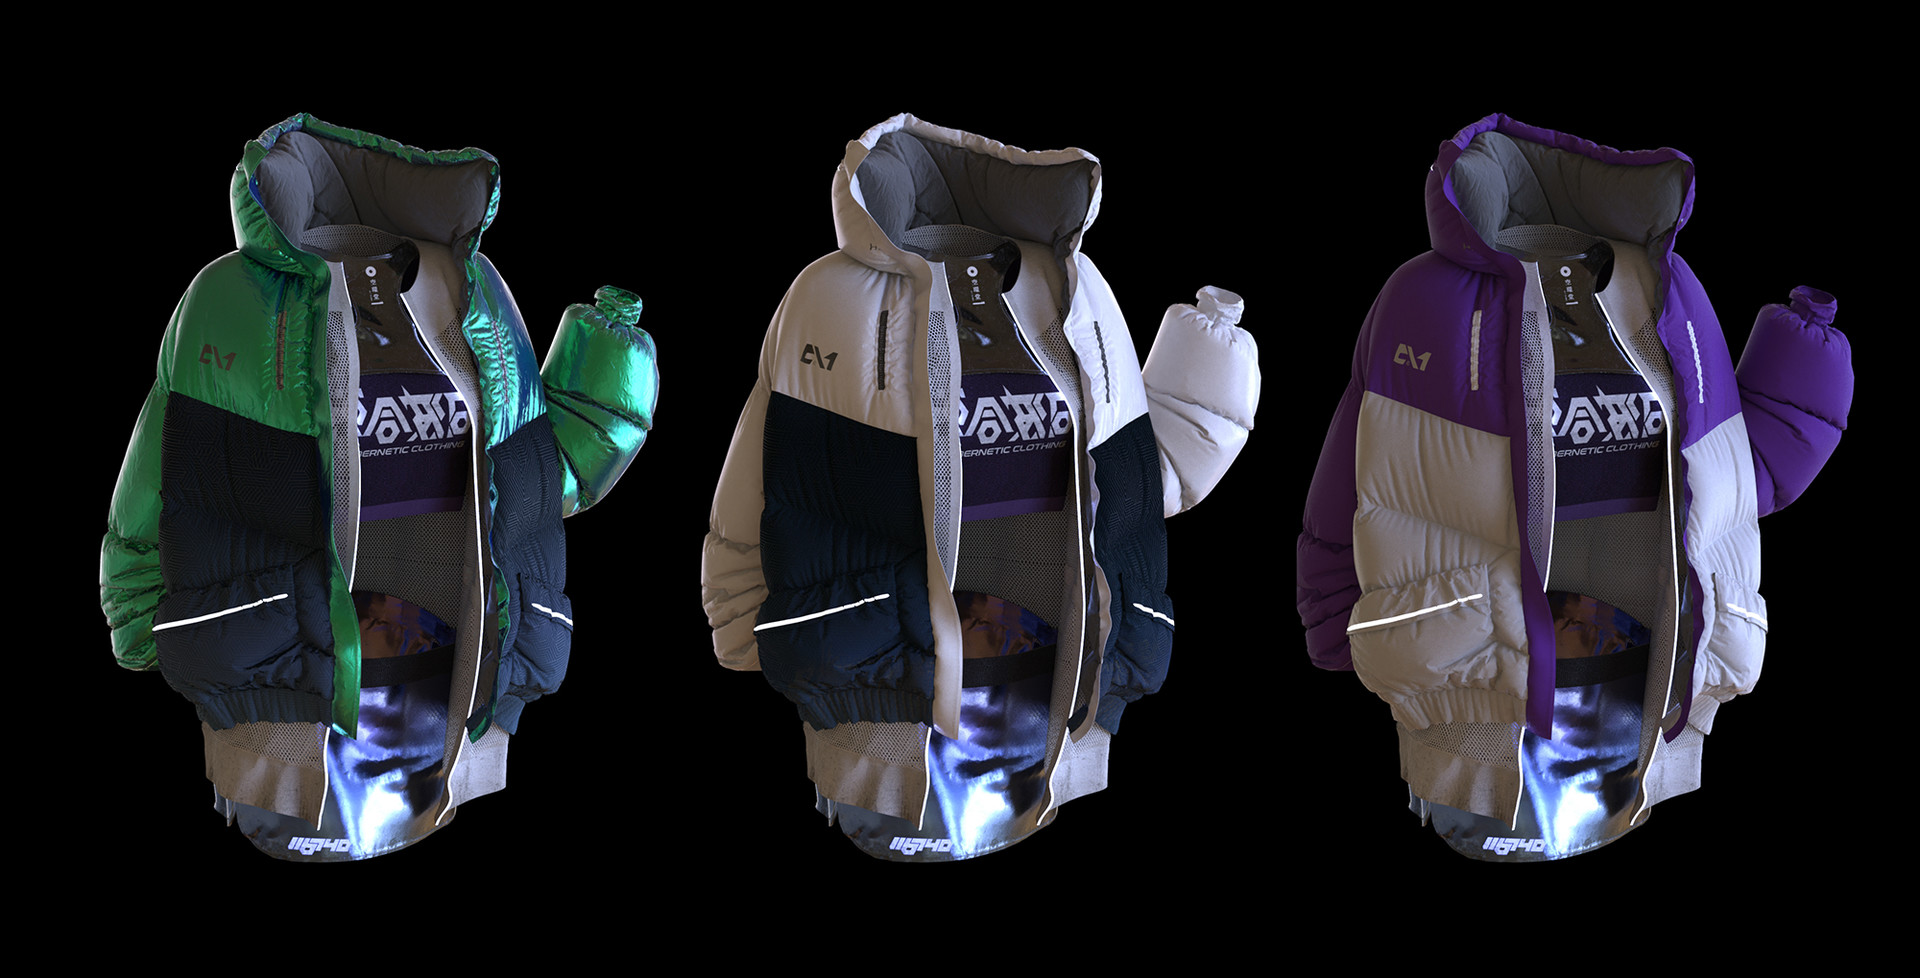 Oleg zherebin jackets